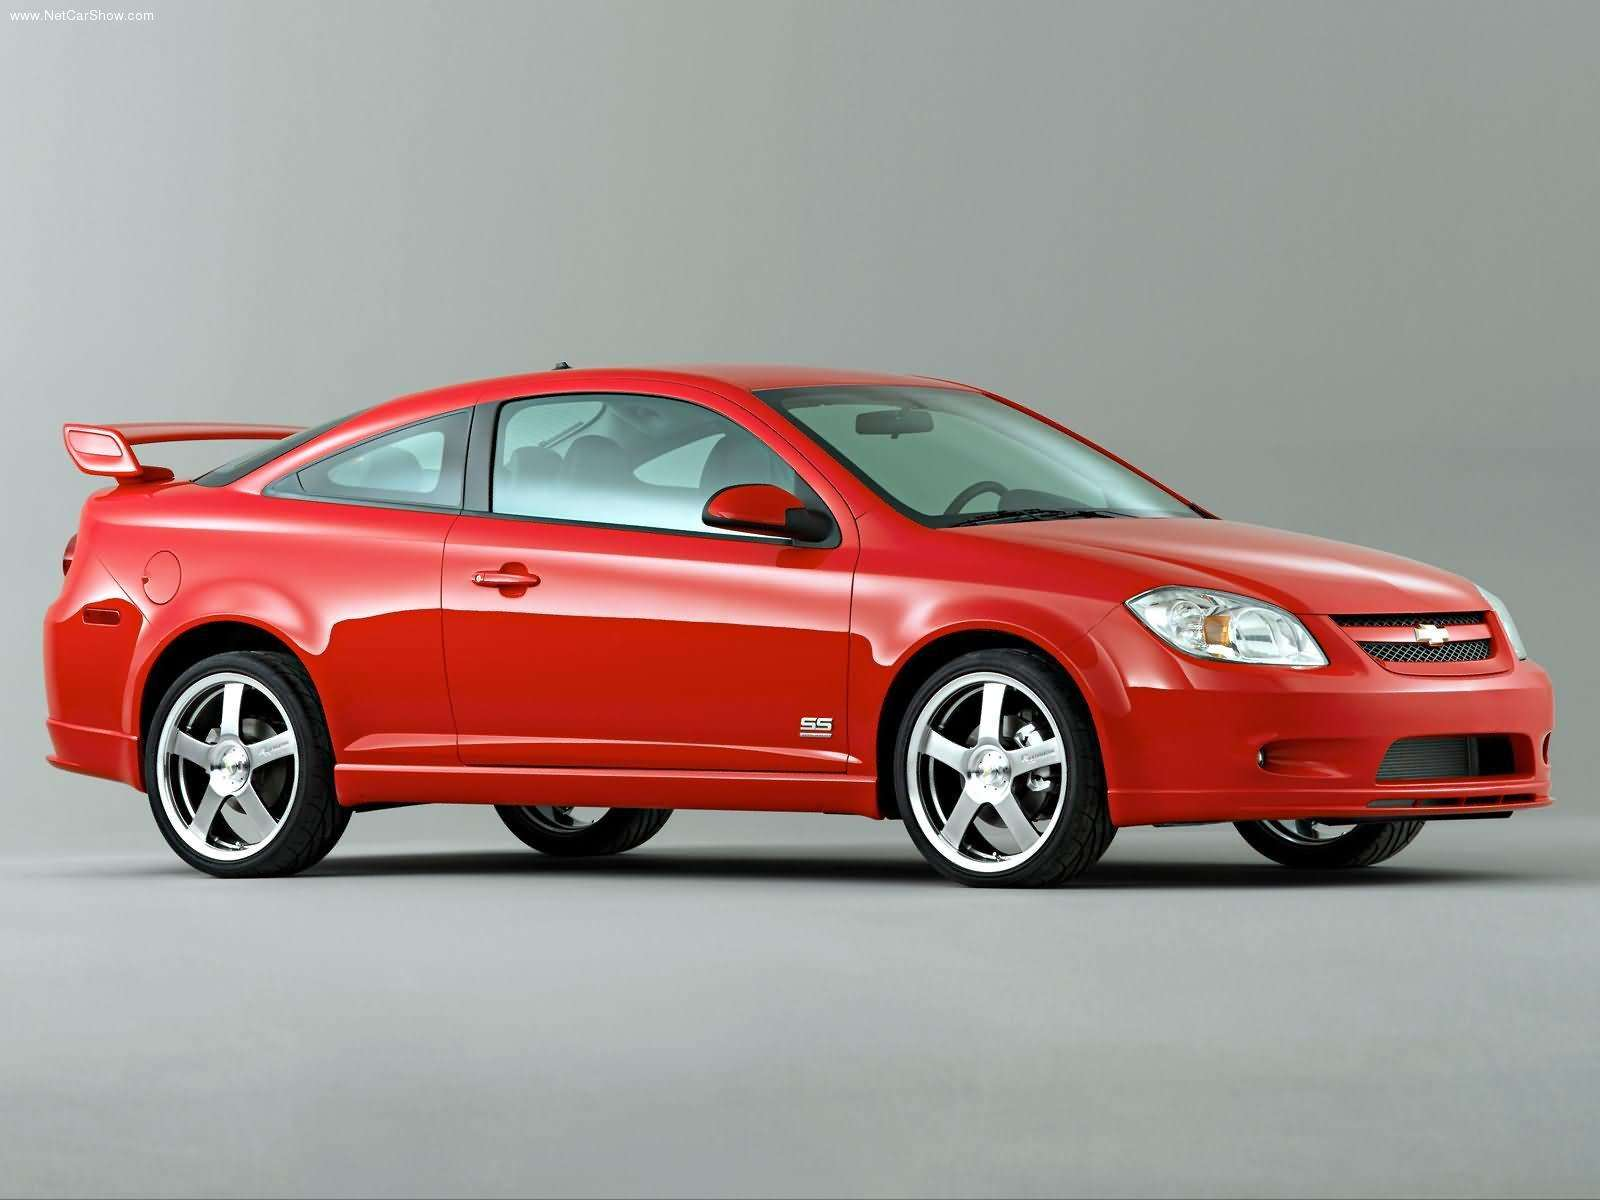 2010 Cobalt Ss >> My Perfect Chevrolet Cobalt Ss 3dtuning Probably The Best